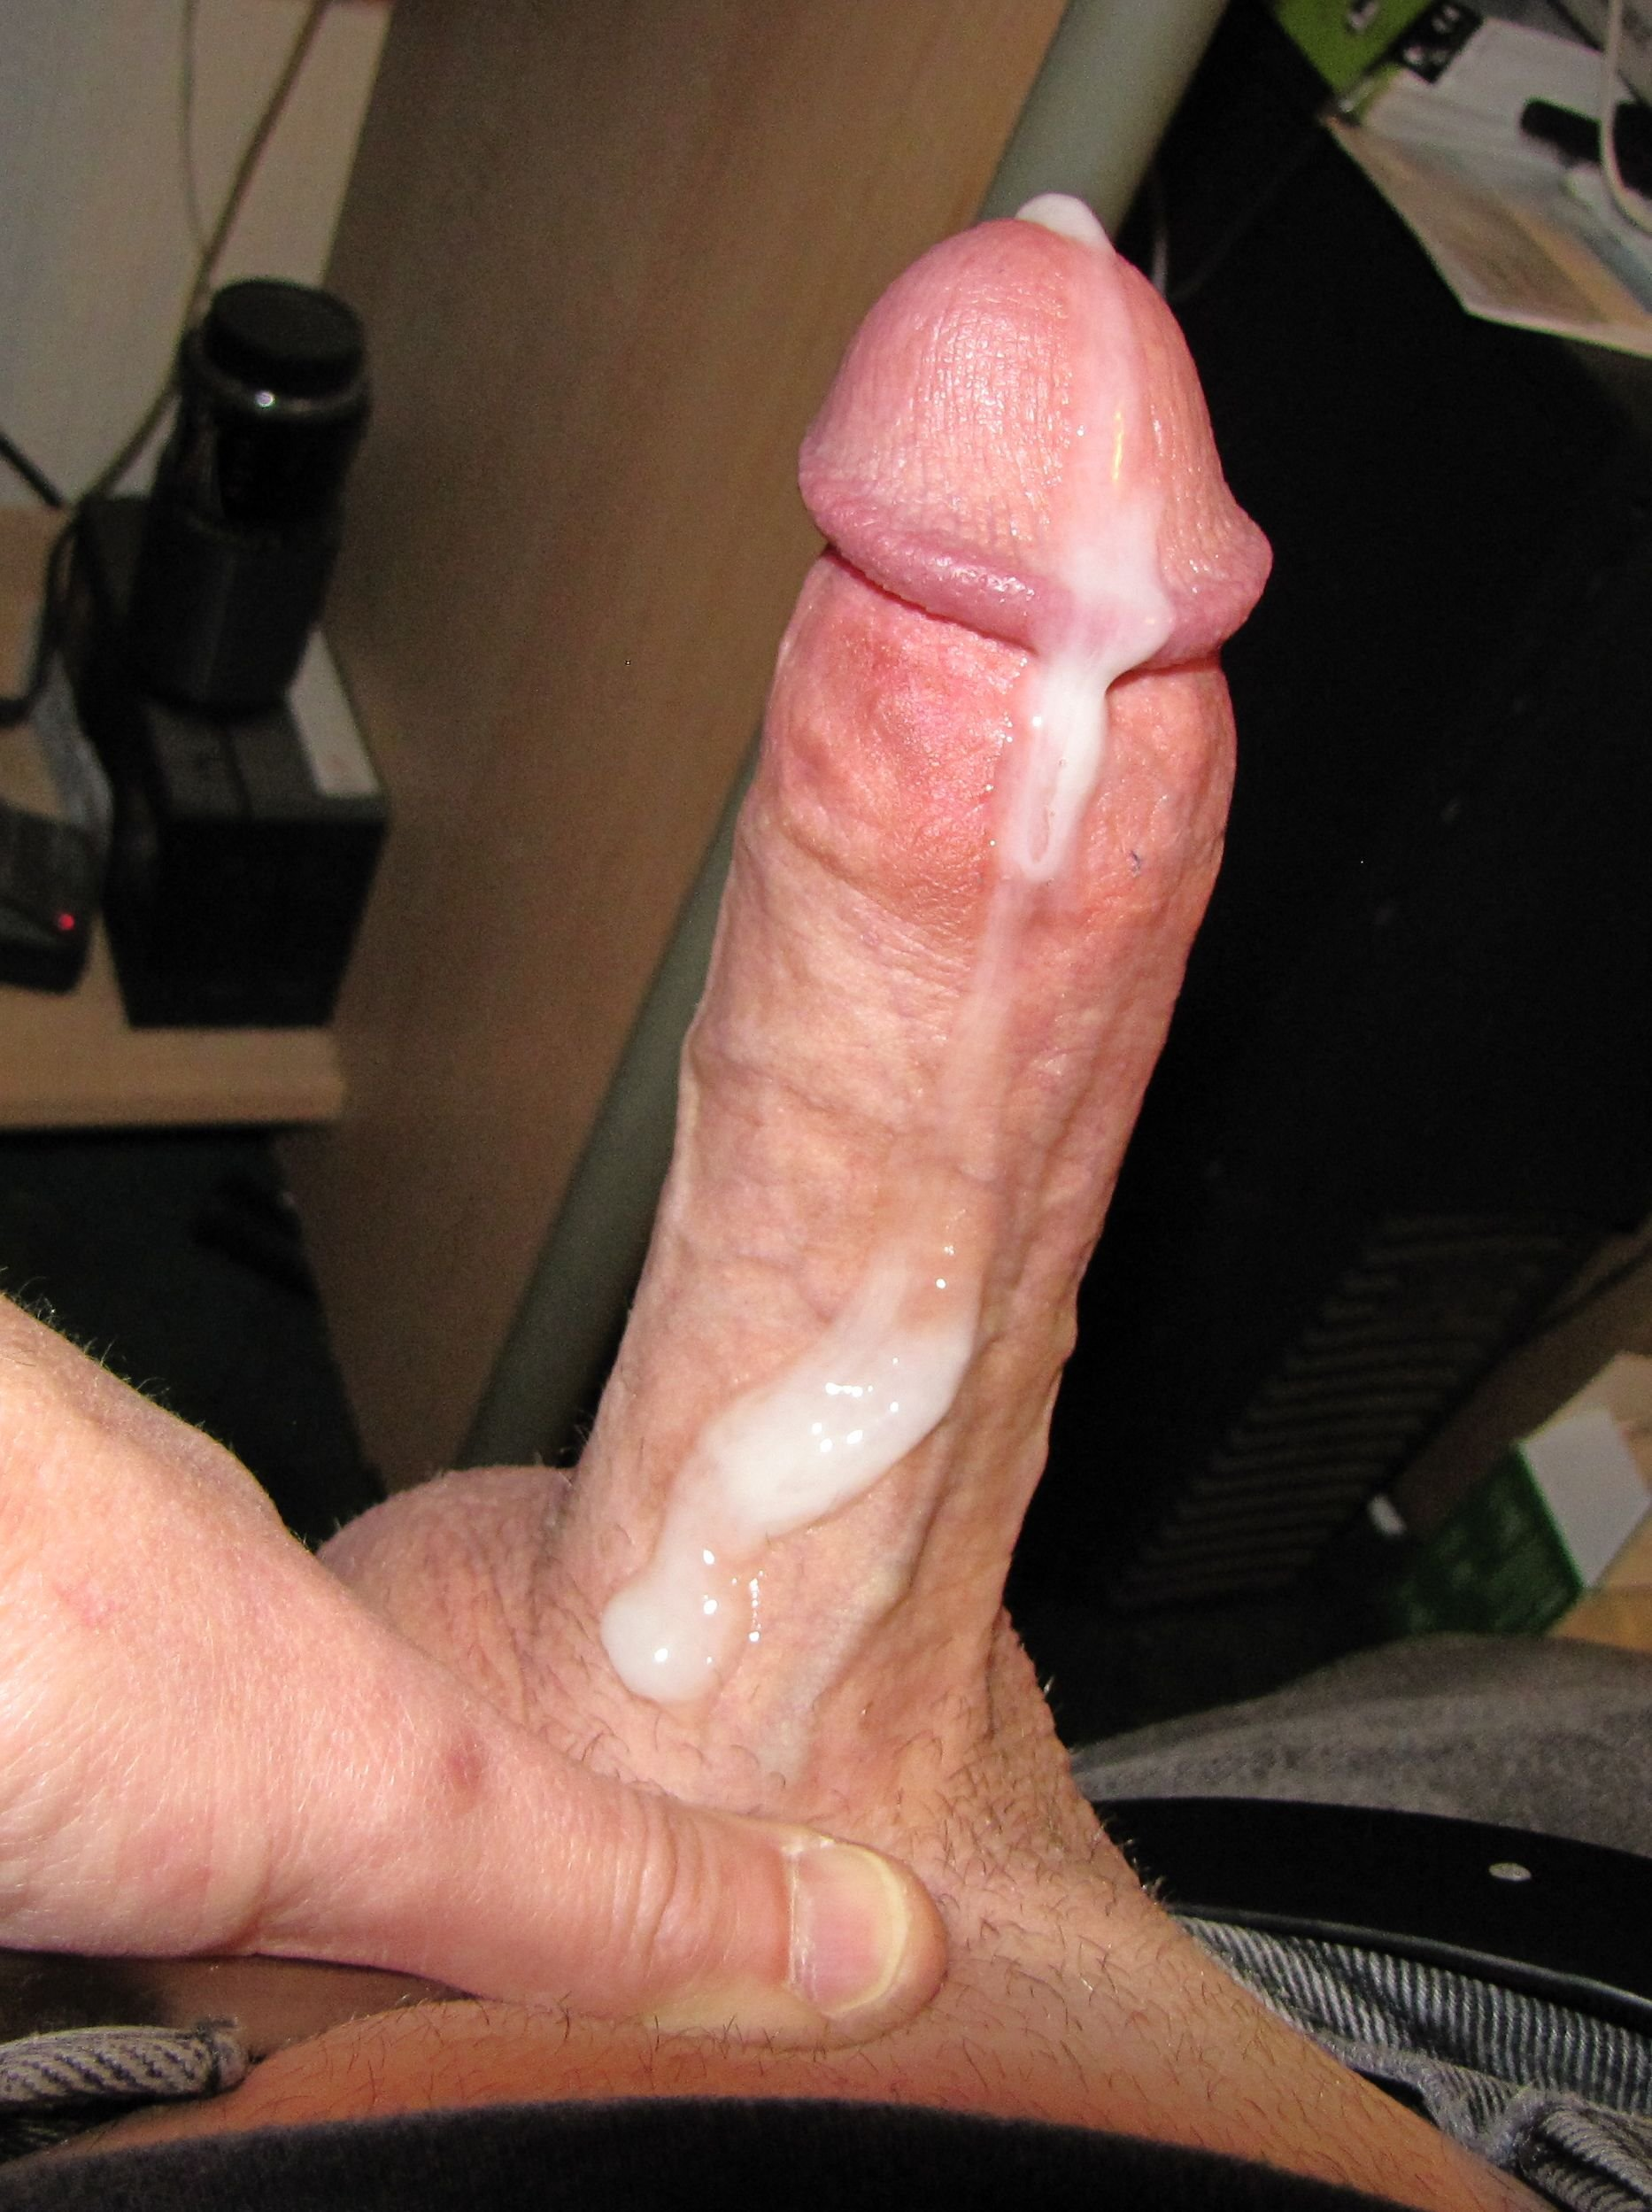 Will someone rate my hard cock